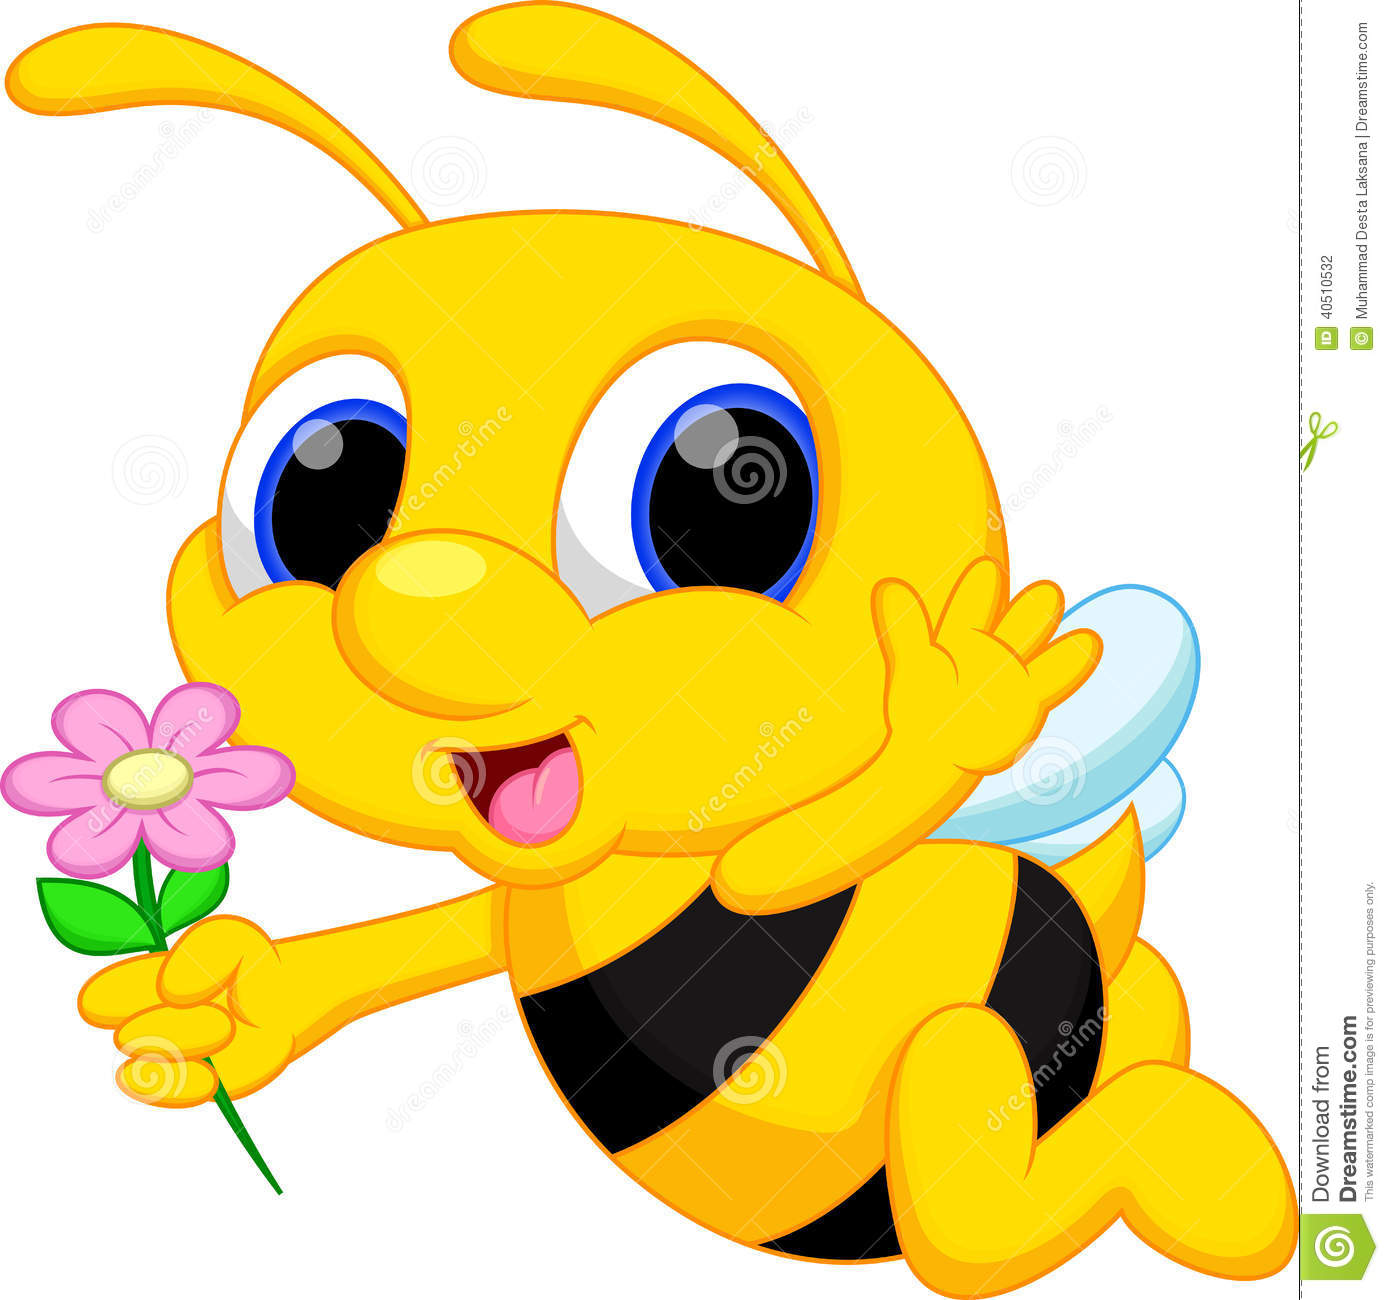 cute bee cartoon stock illustration illustration of bumblebee rh dreamstime com Cute Bumble Bee Bumble Bee Border